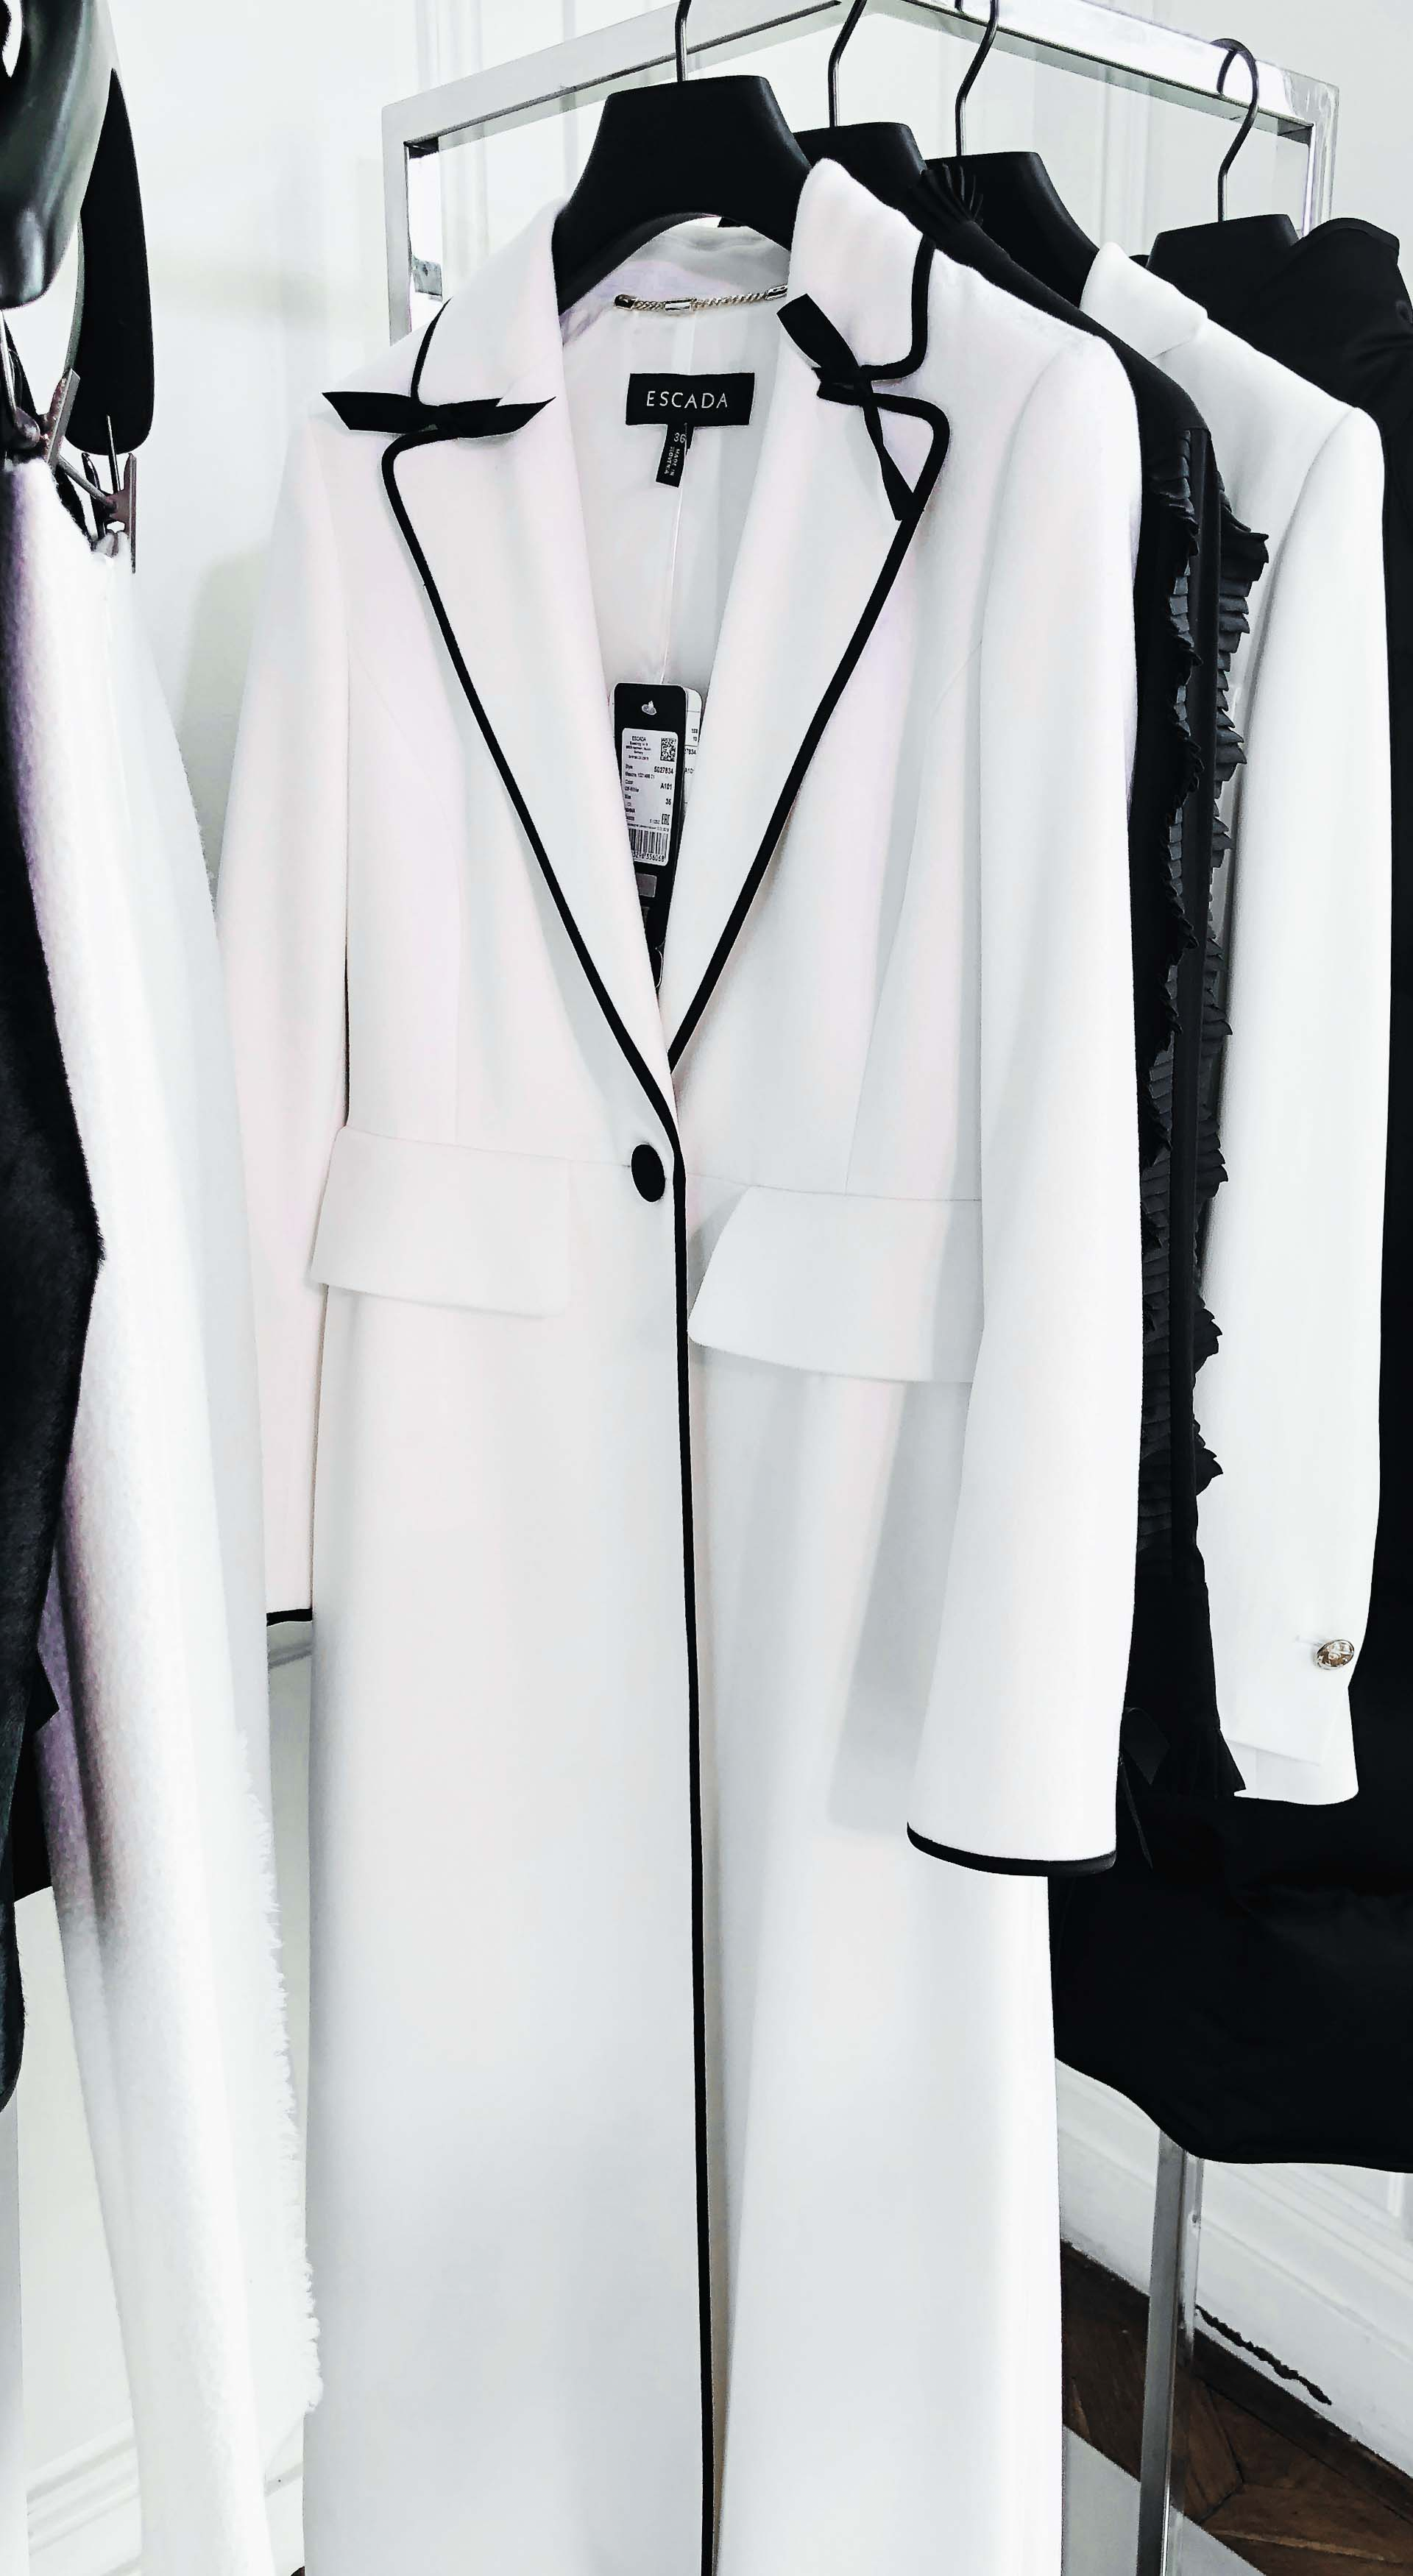 Brunette from Wall Street Escada black and white coat